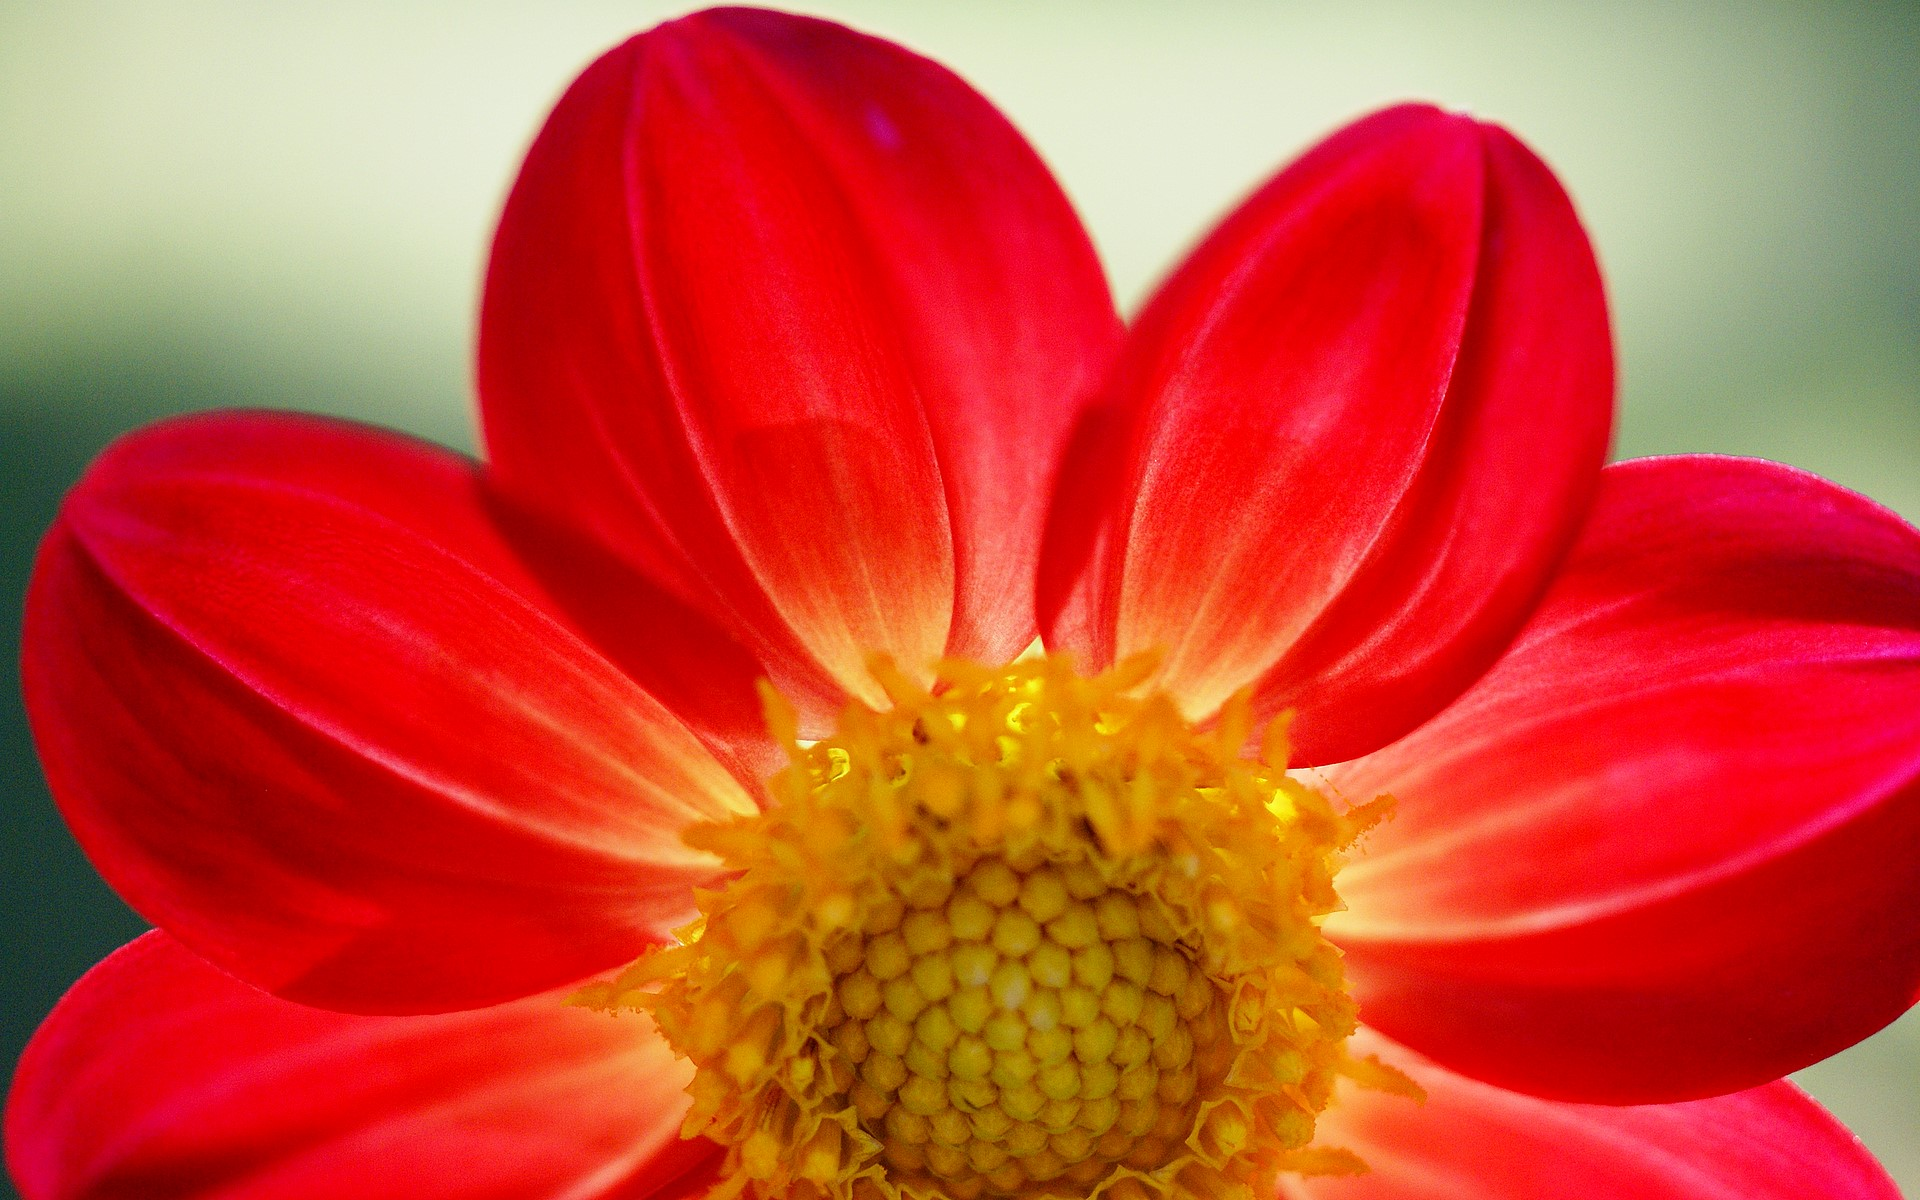 Daisy flower meaning flower meaning 1648619 sciencemadesimplefo daisy flower meaning flower meaning izmirmasajfo